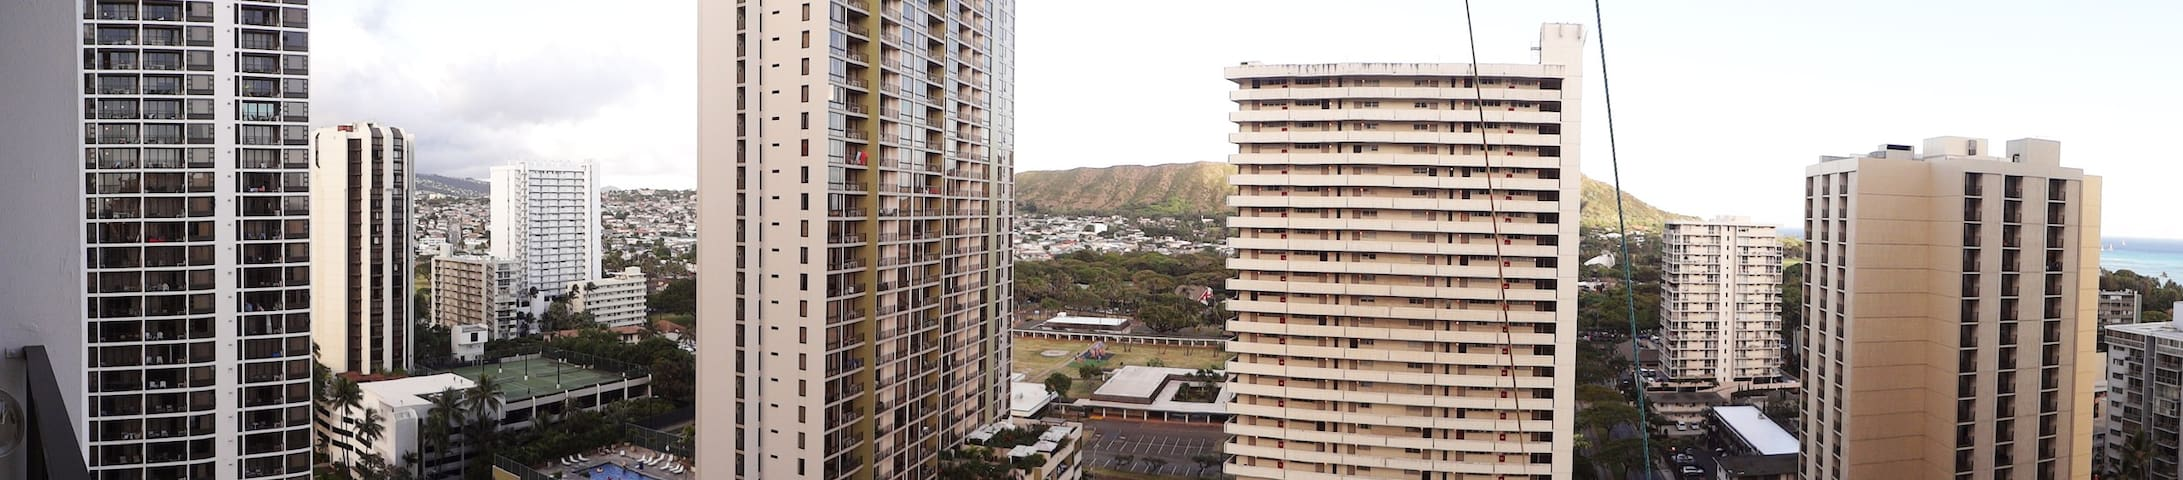 Panoramic from the lanai.